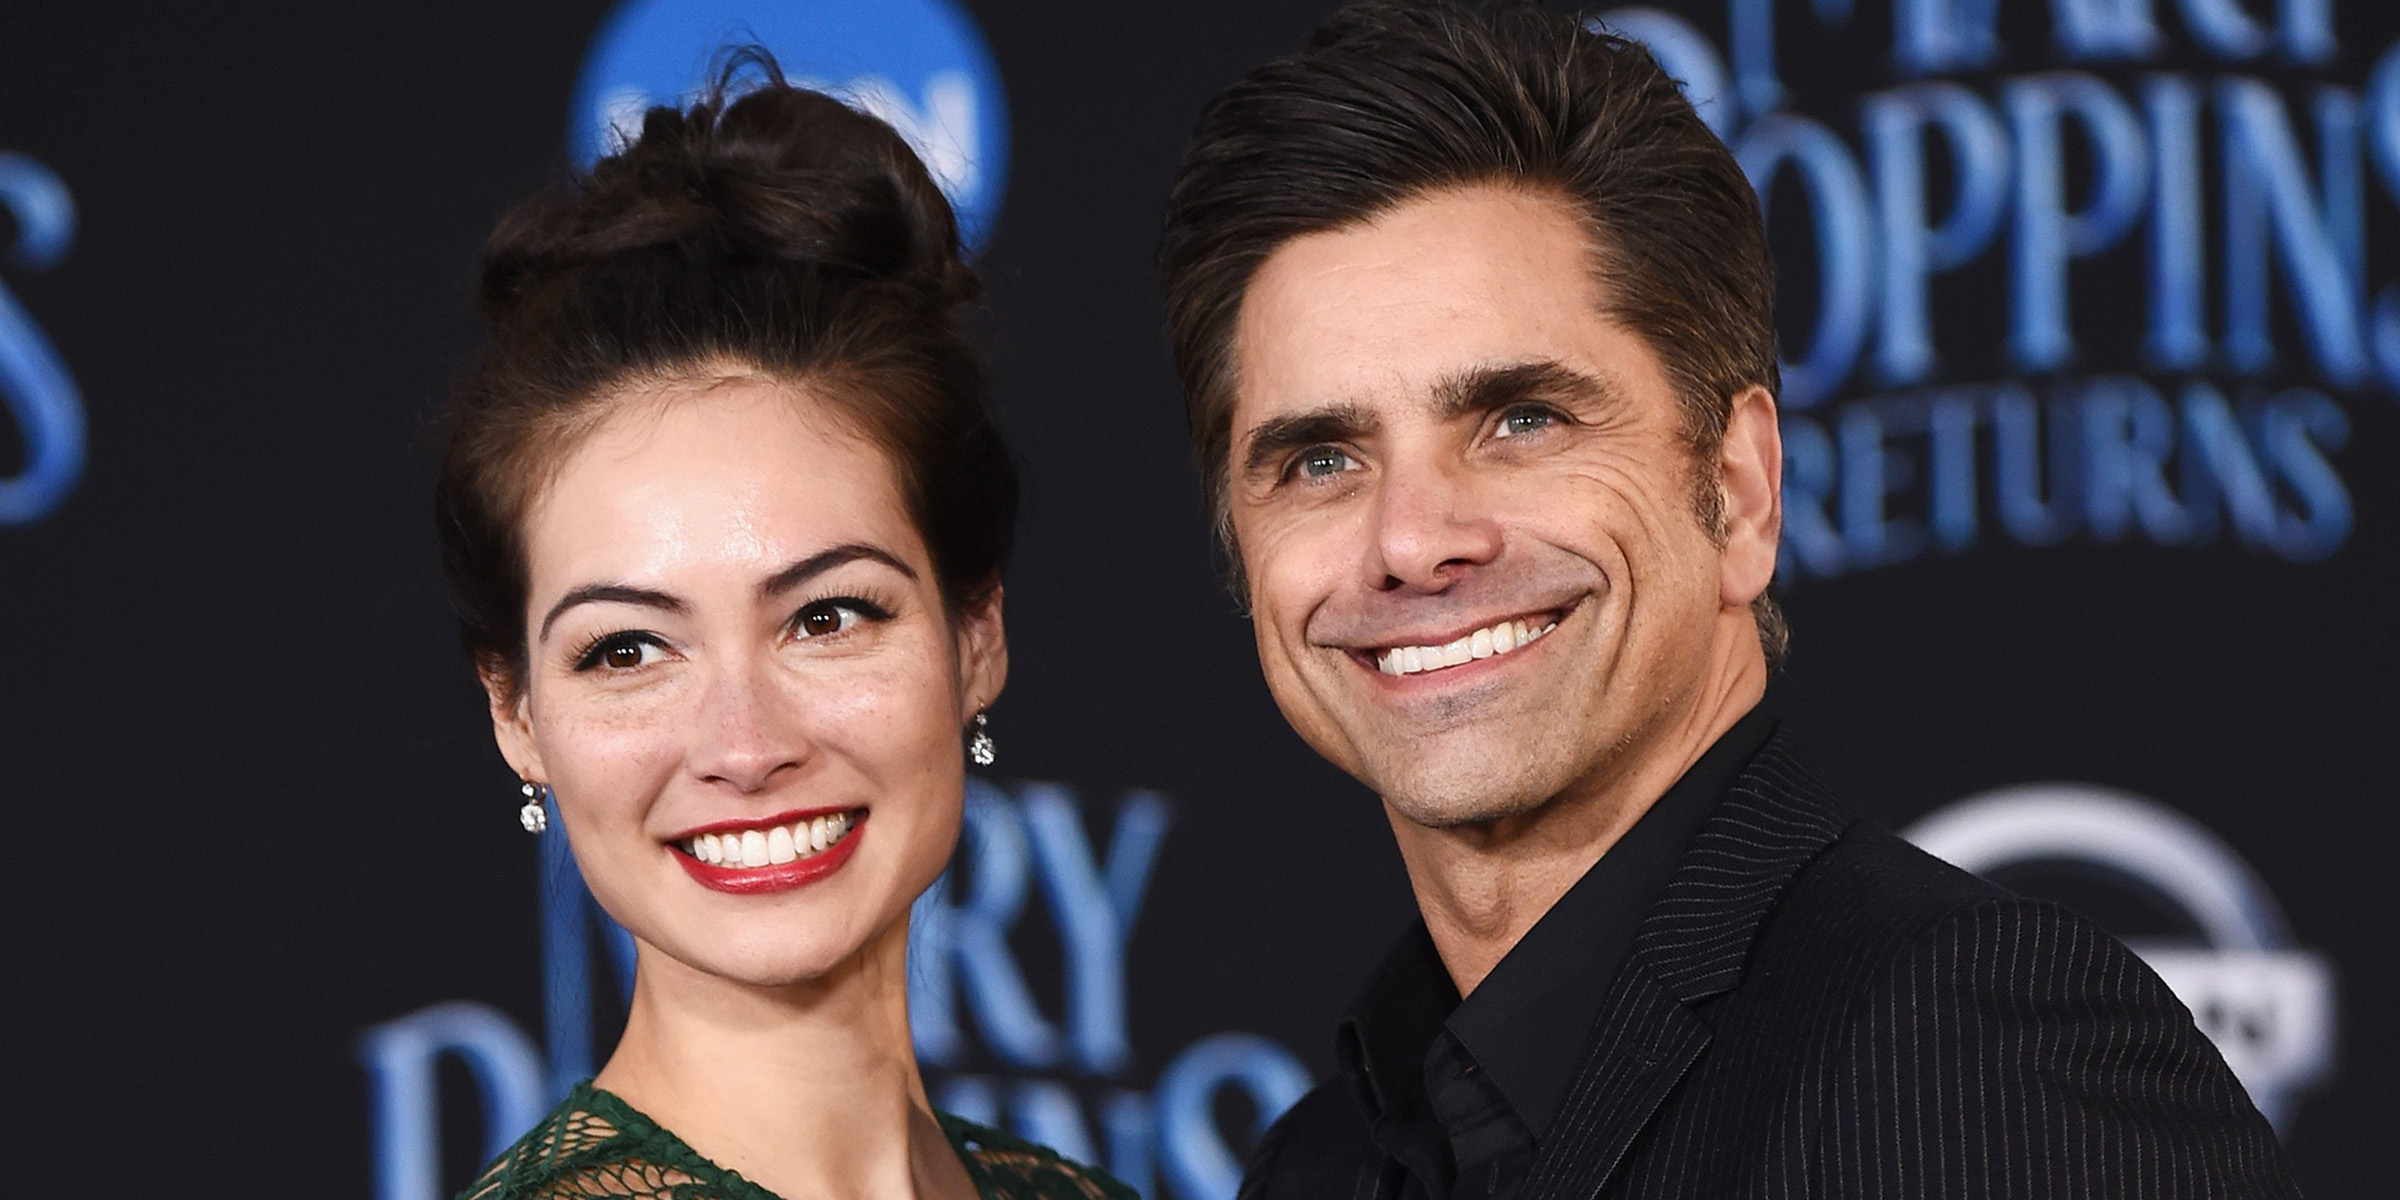 e8a5f1010cc John Stamos wishes wife happy 33rd birthday with sweet family pics